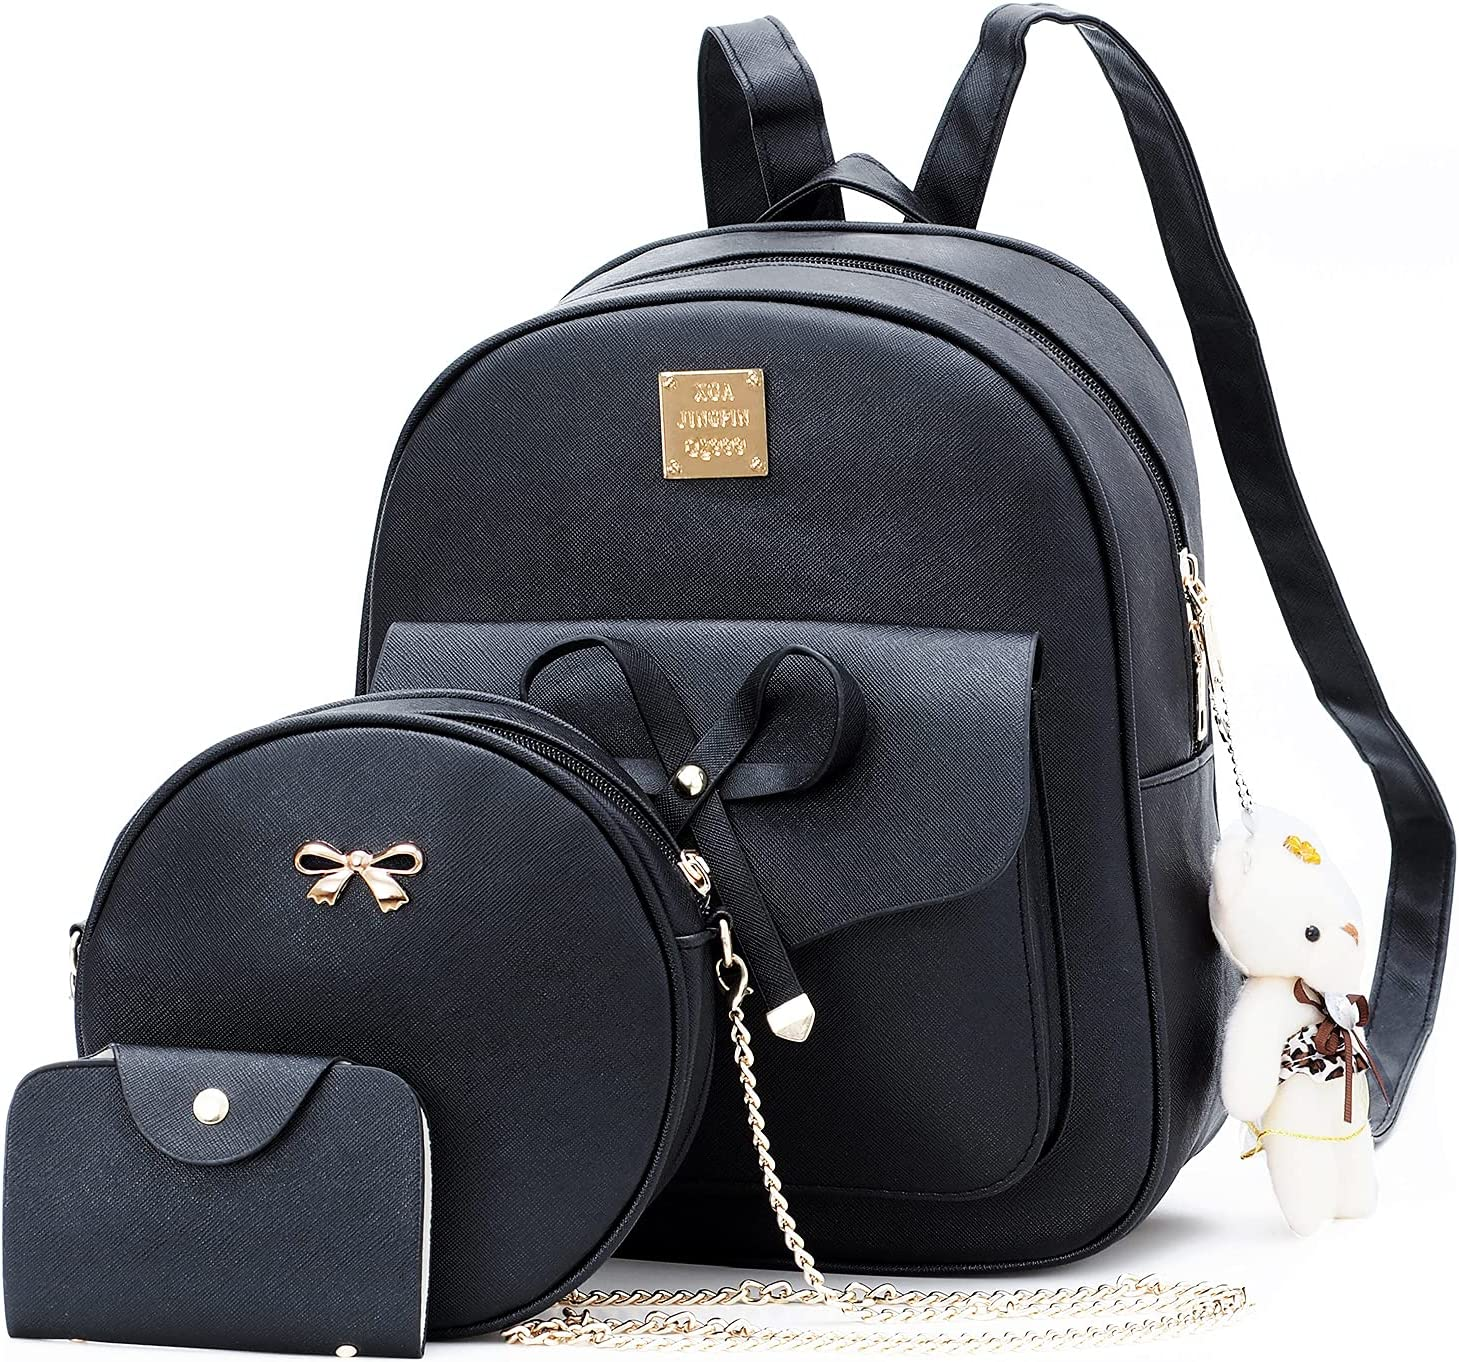 chzk Fashion Mini Leather Backpack 3-Pieces Cute Bowknot Small Backpack Purse Travel Backpack Handbags Multifunctional Crossbody Purse Shoulder Bag with Wallet for Girls Women Black